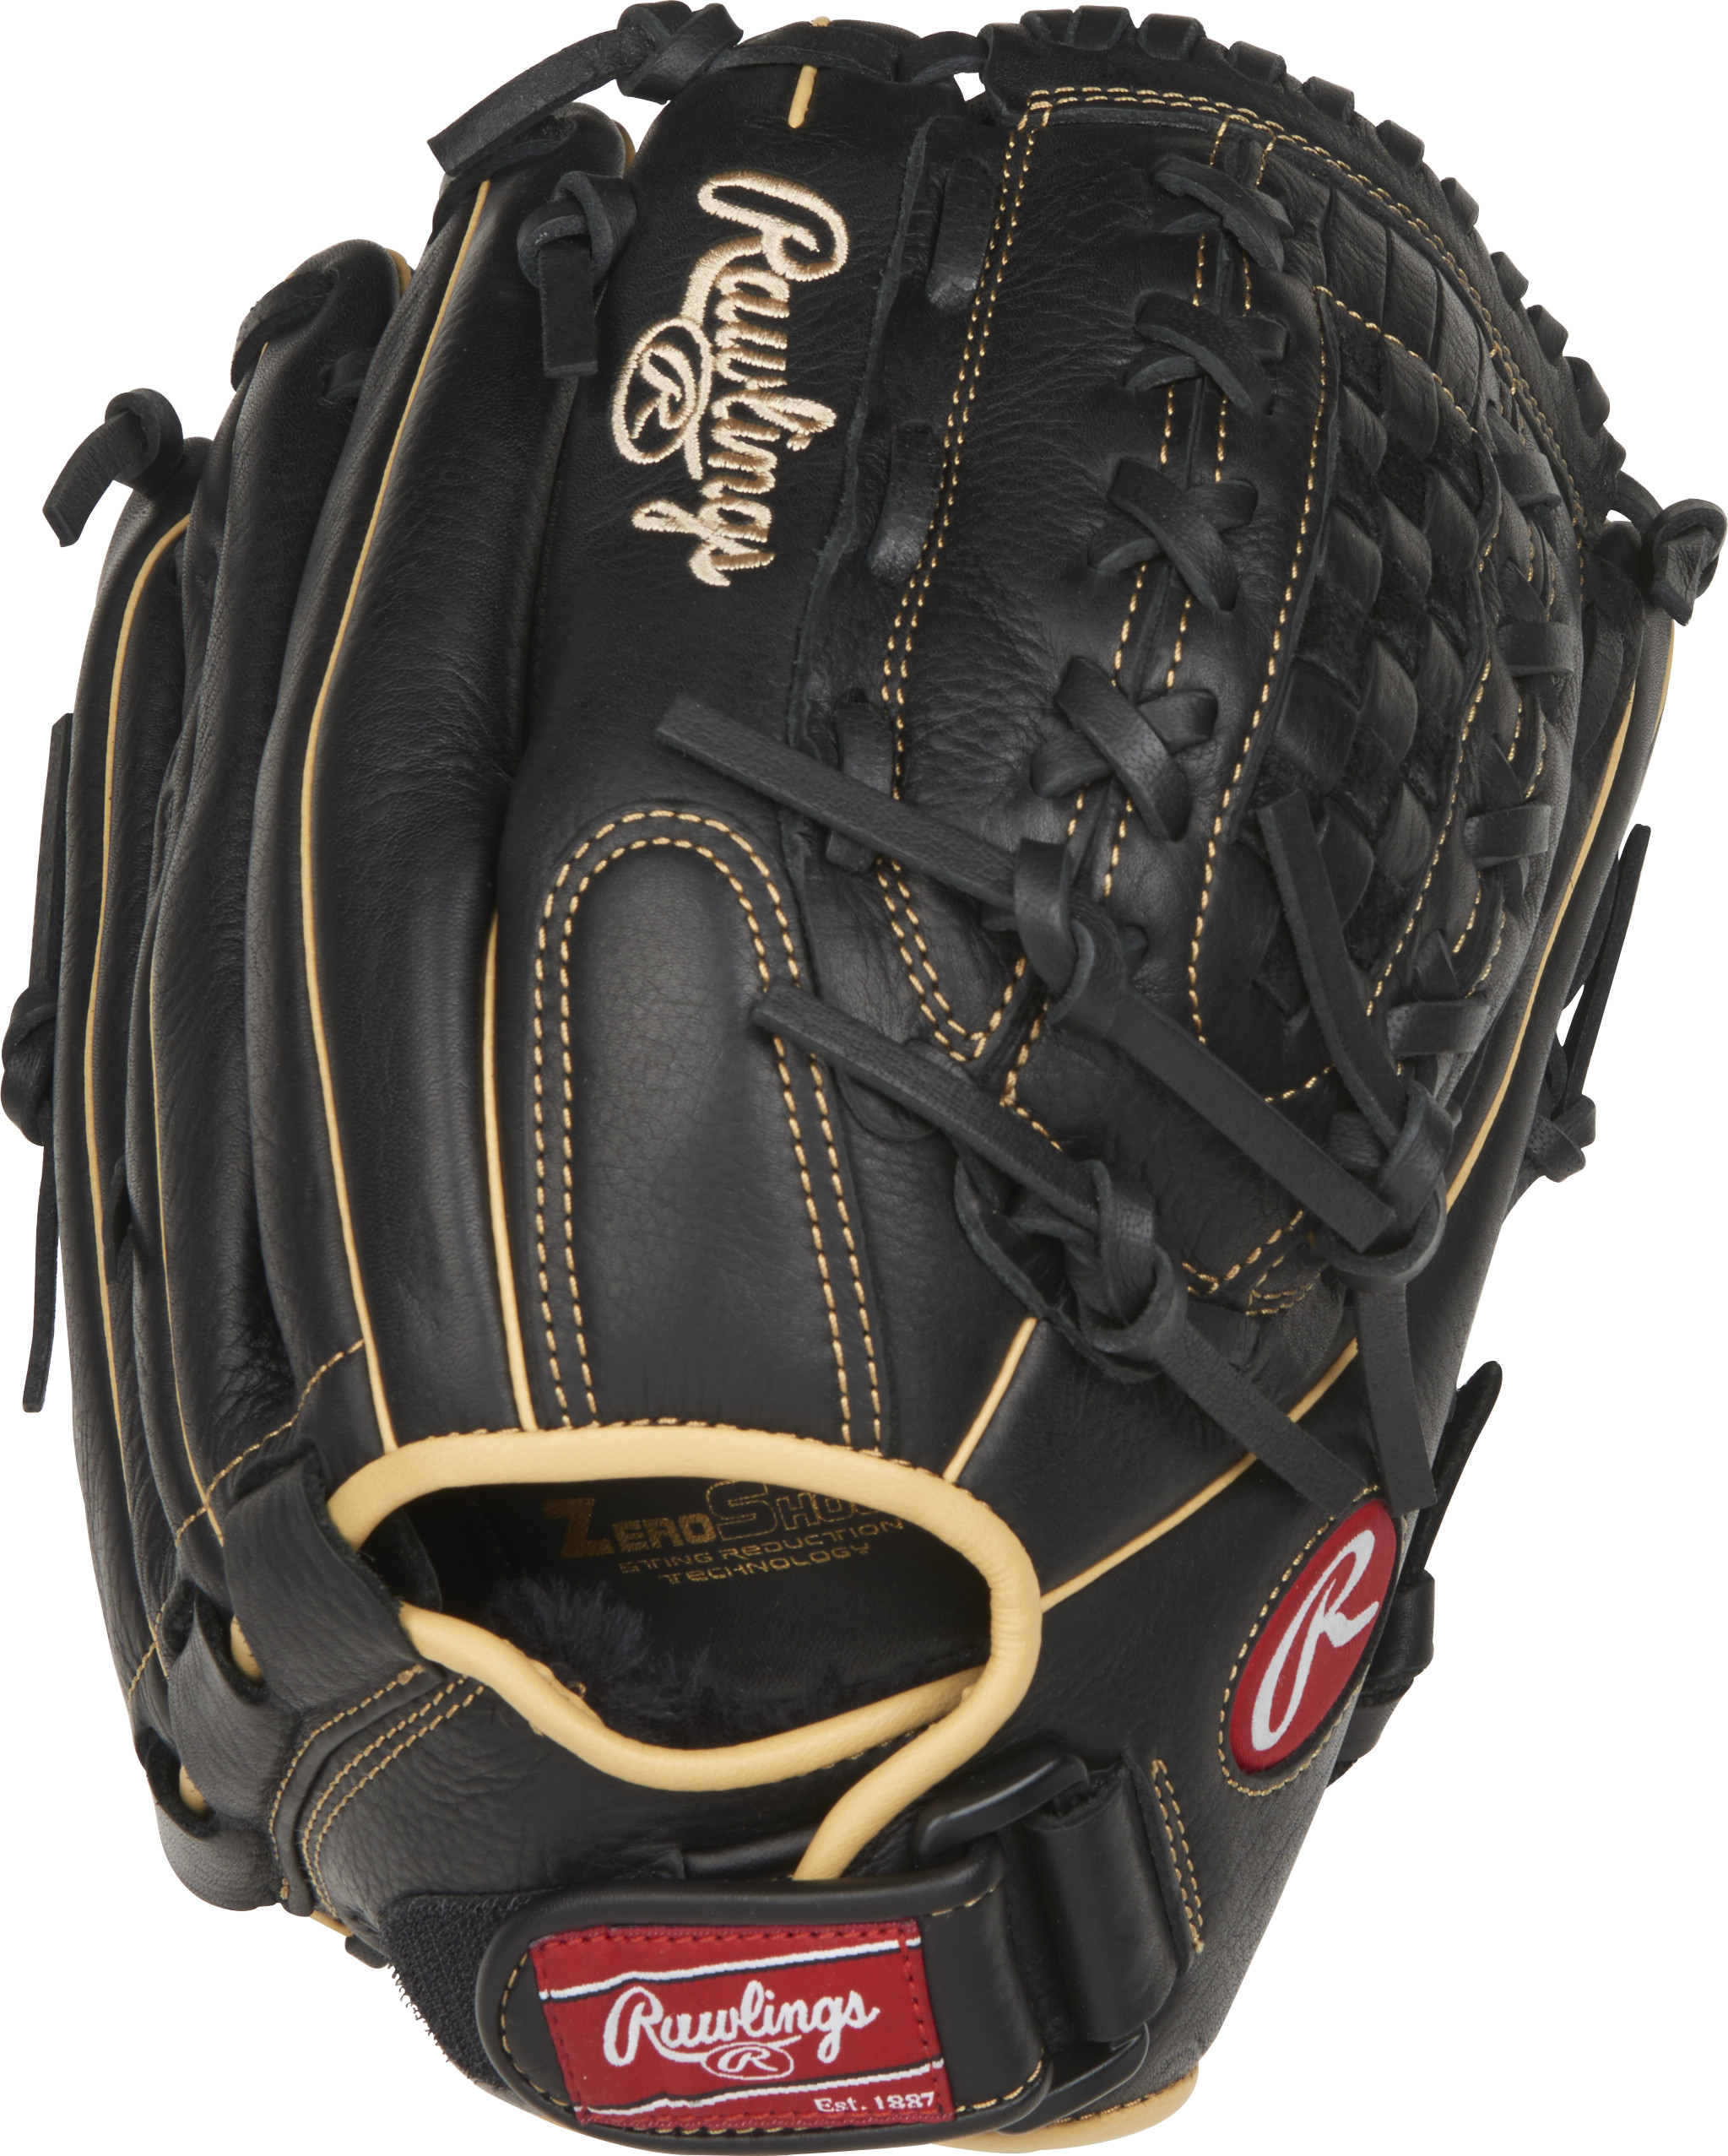 http://www.bestbatdeals.com/images/gloves/rawlings/RSO125BCC-2.jpg